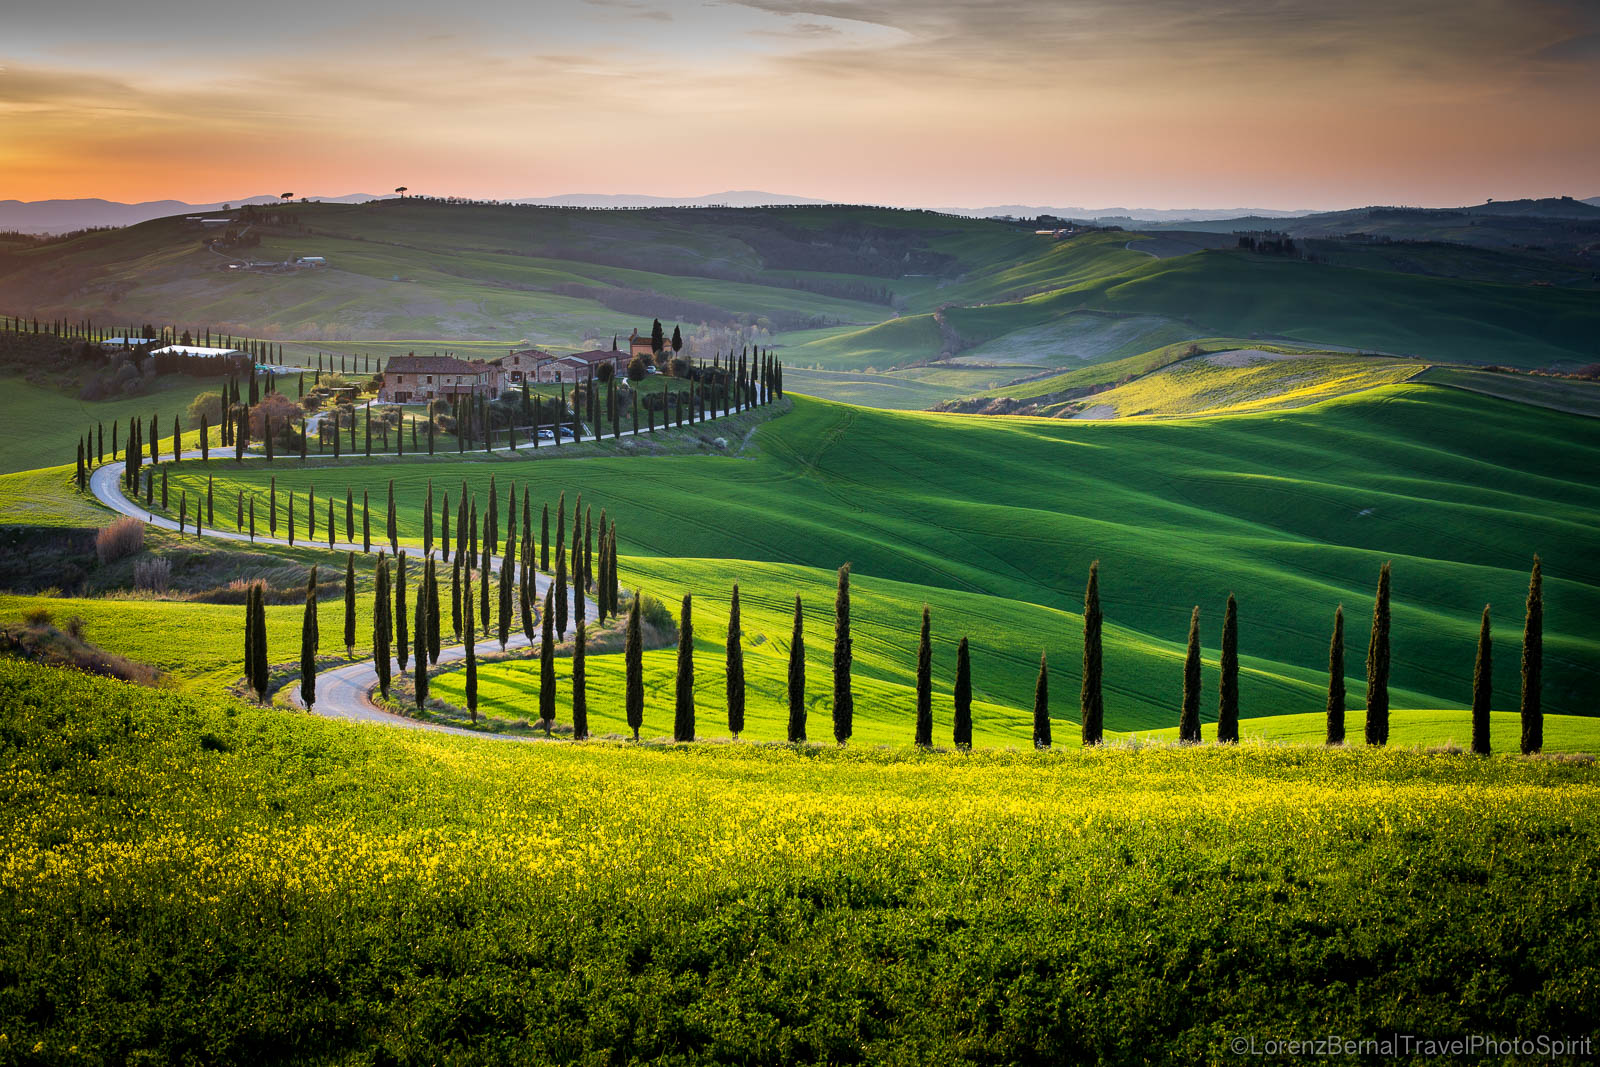 A distinctive driveway of Tuscany, bordered with Cypresses - A Lorenz Berna Photography of Italy.